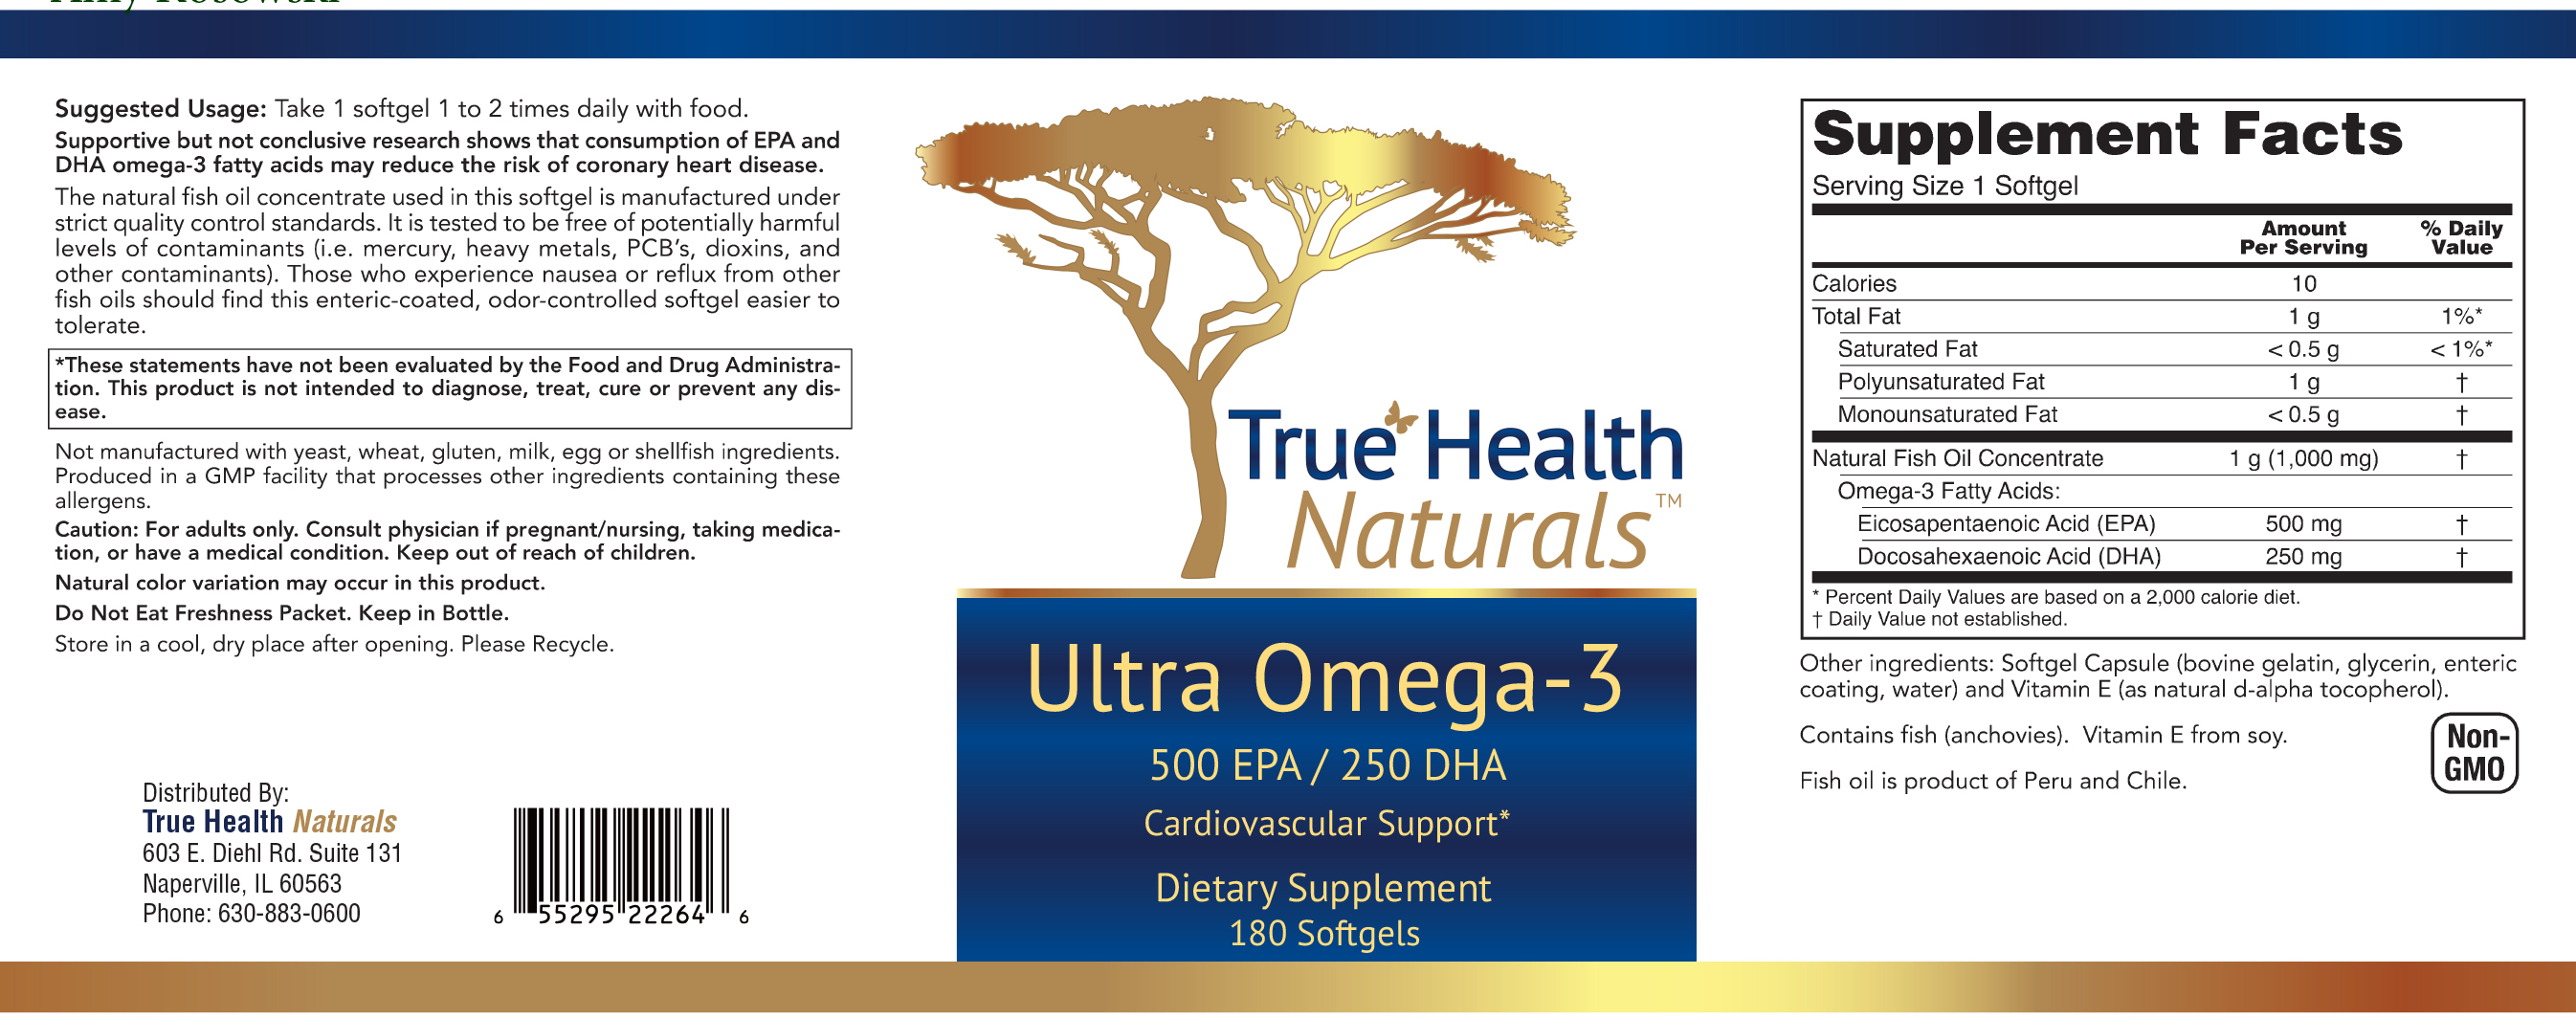 Ultra Omega 3 label